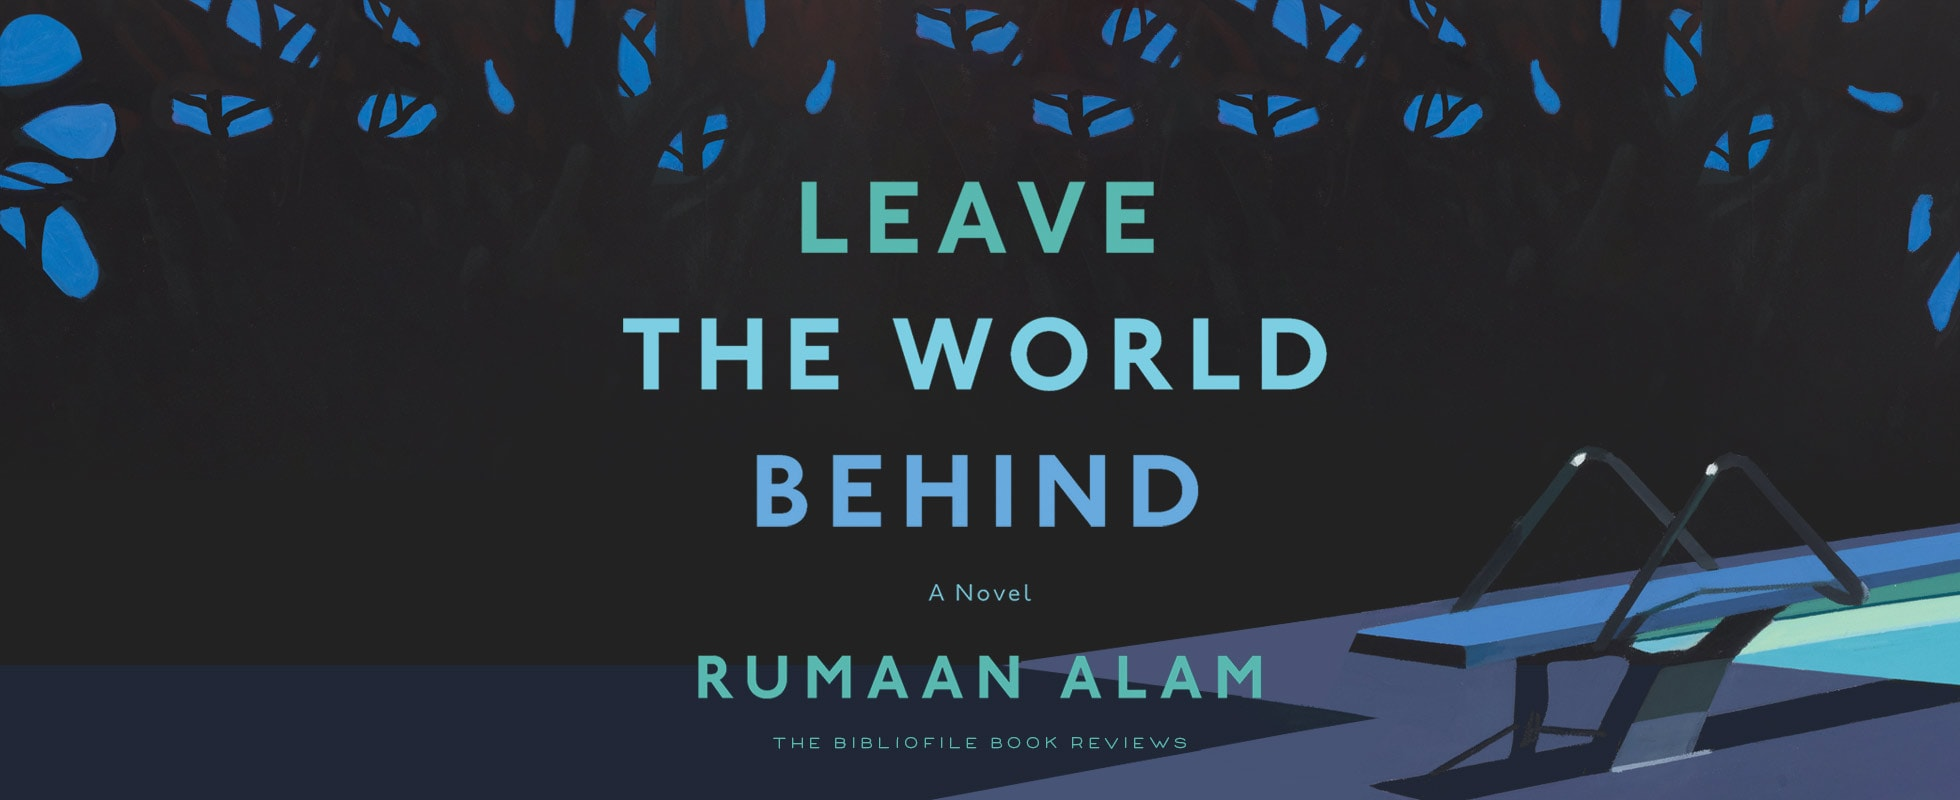 leave the world behind rumaan alam book review plot summary synopsis chapter summary